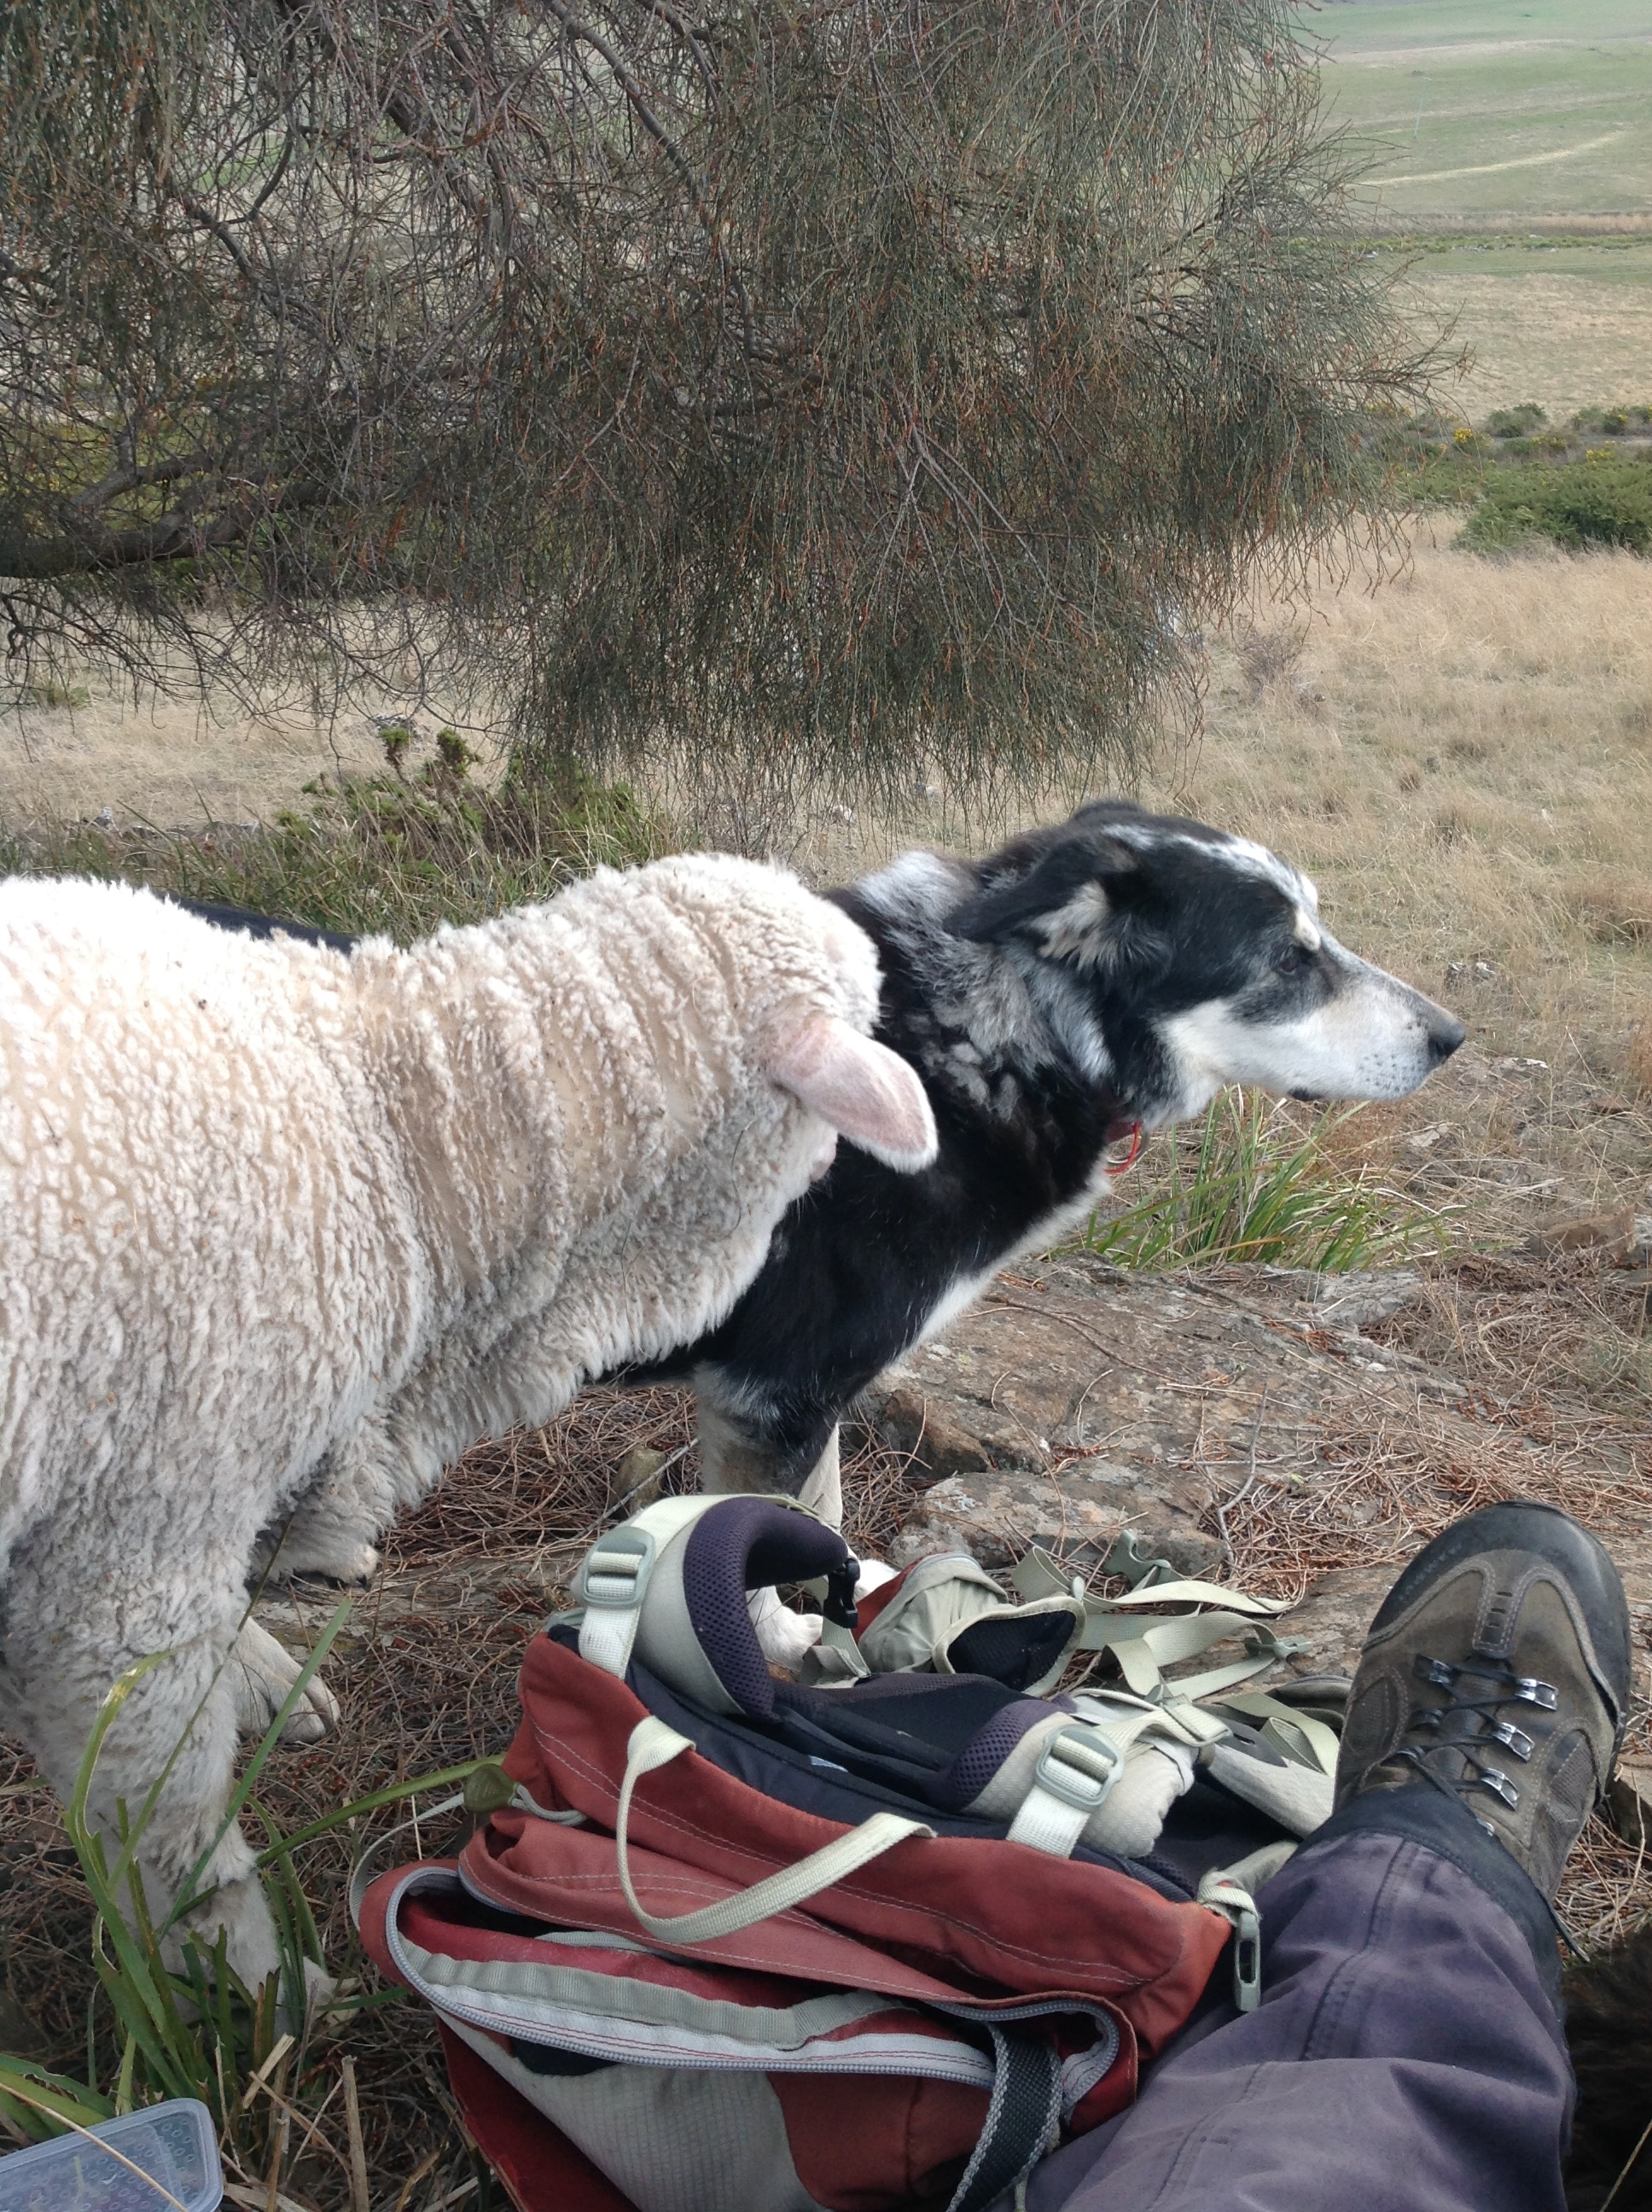 Chance ignoring Zac's overtures of friendship, during a break on a chilly shepherding day